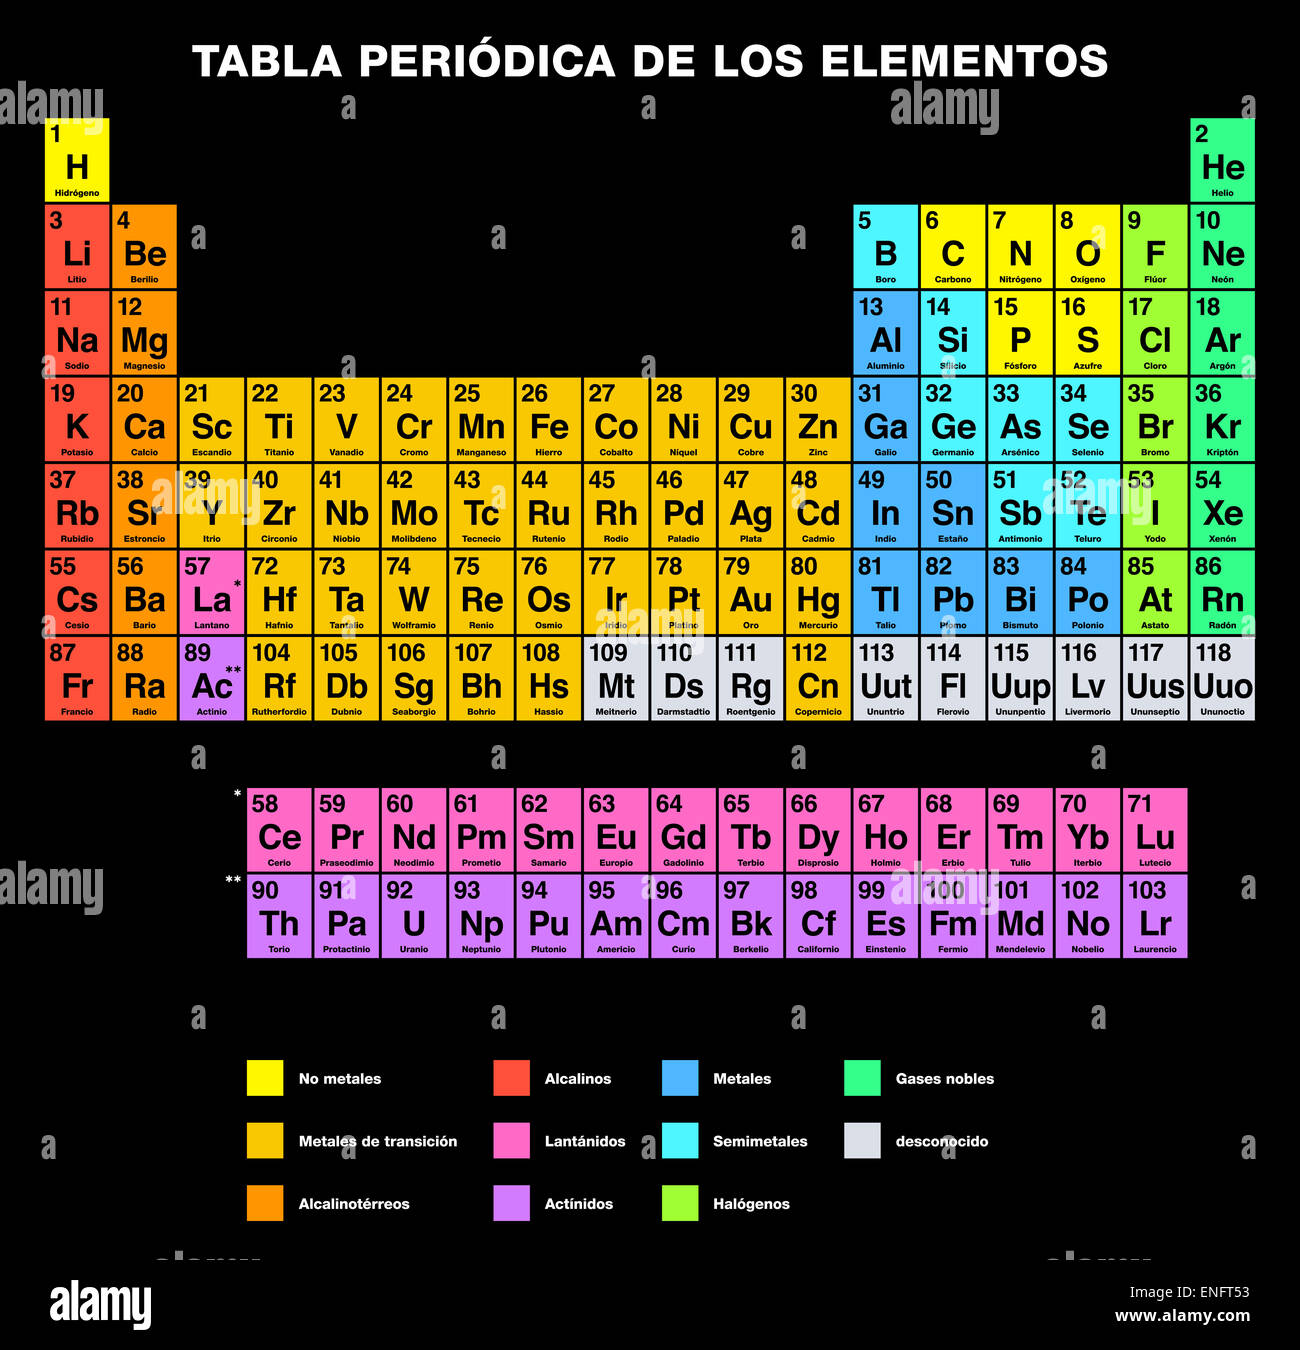 Po element periodic table image collections periodic table images pr element periodic table choice image periodic table images po element periodic table images periodic table gamestrikefo Gallery